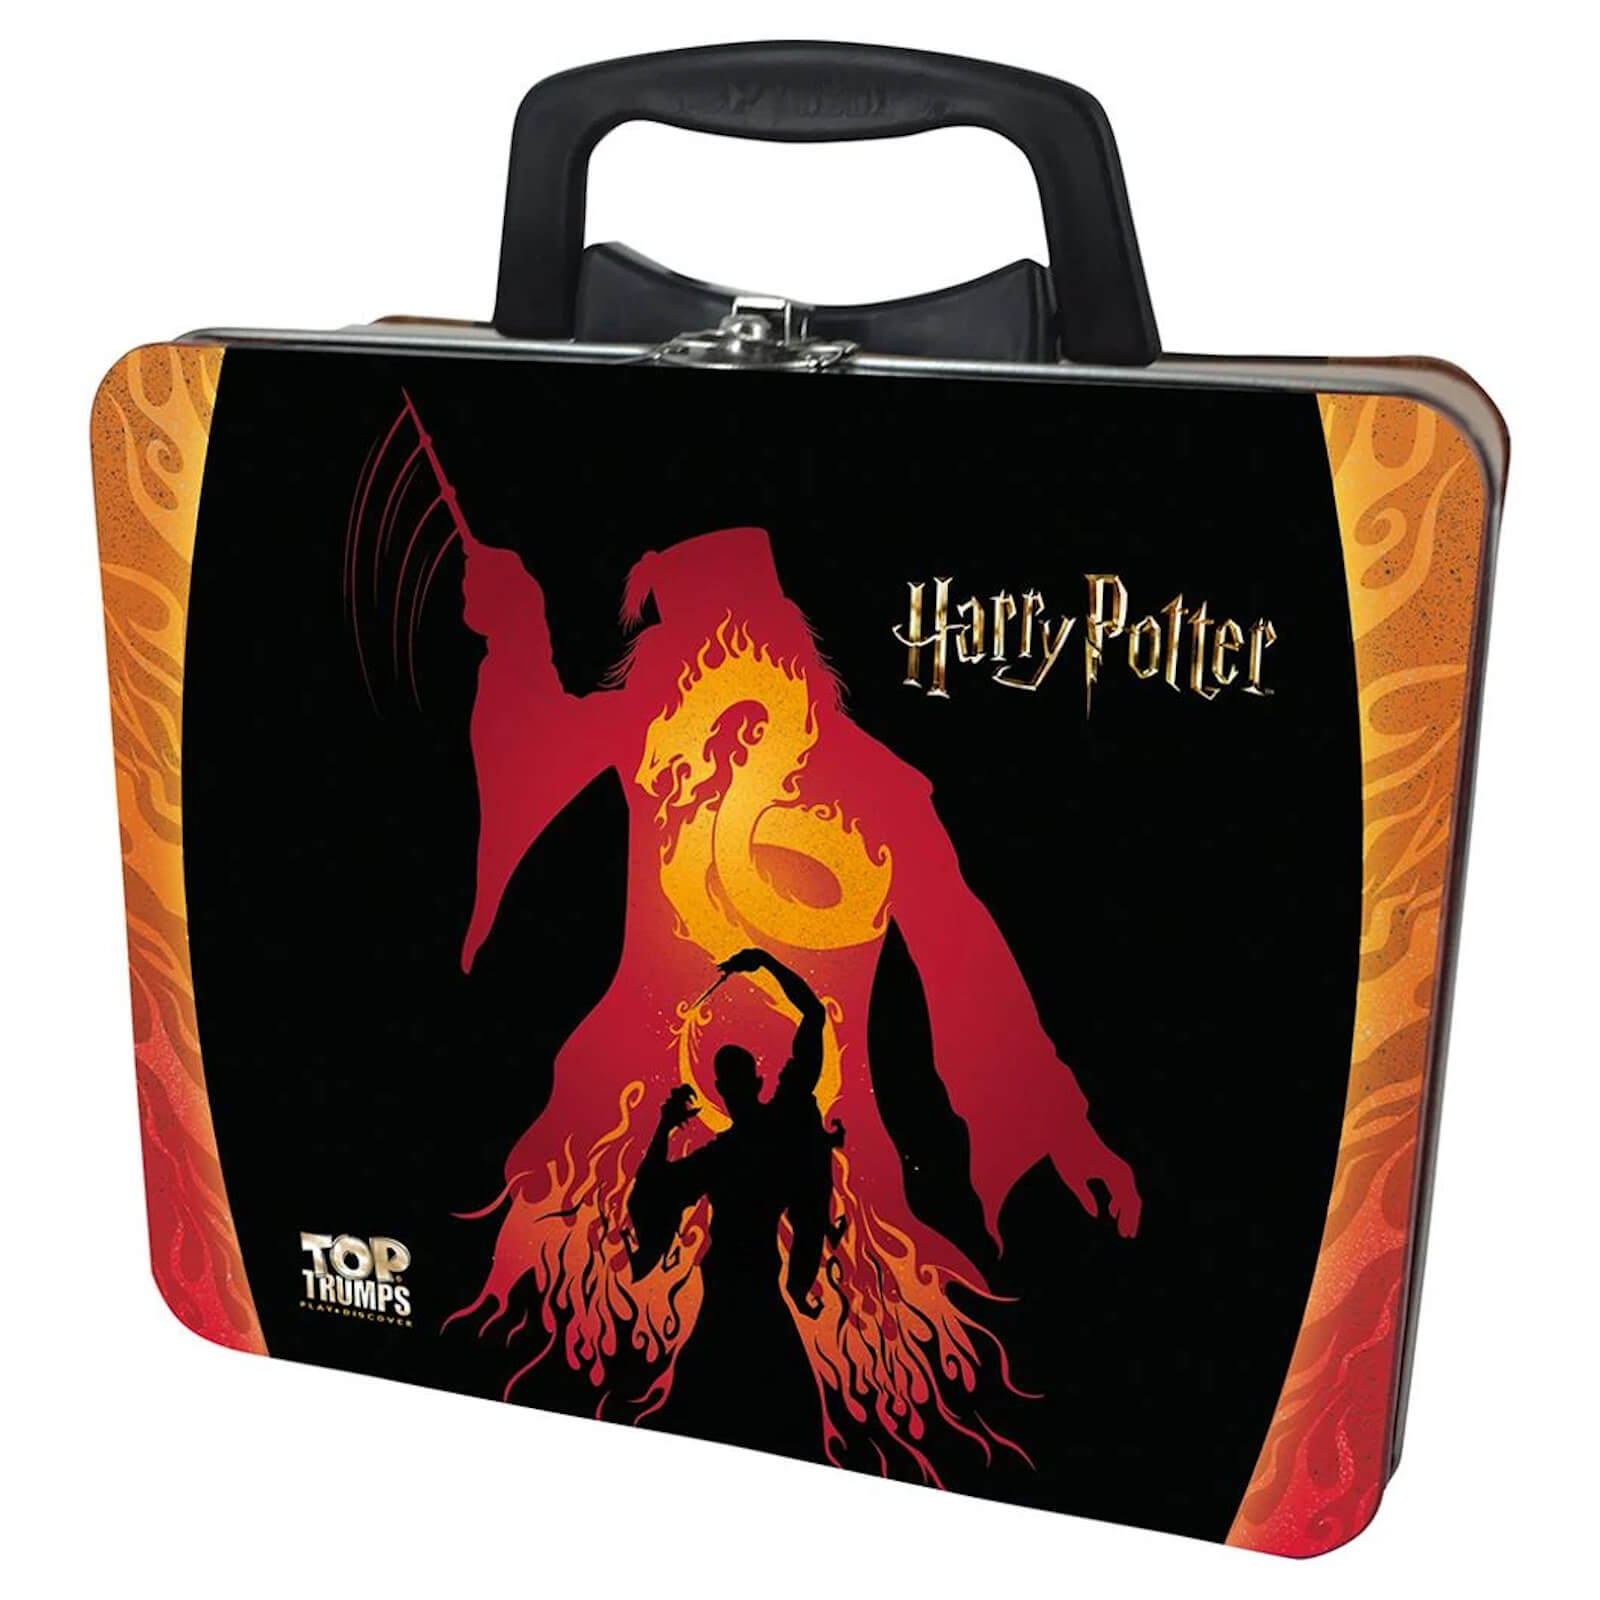 Image of Harry Potter Witches and Wizard Top Trumps Card Game